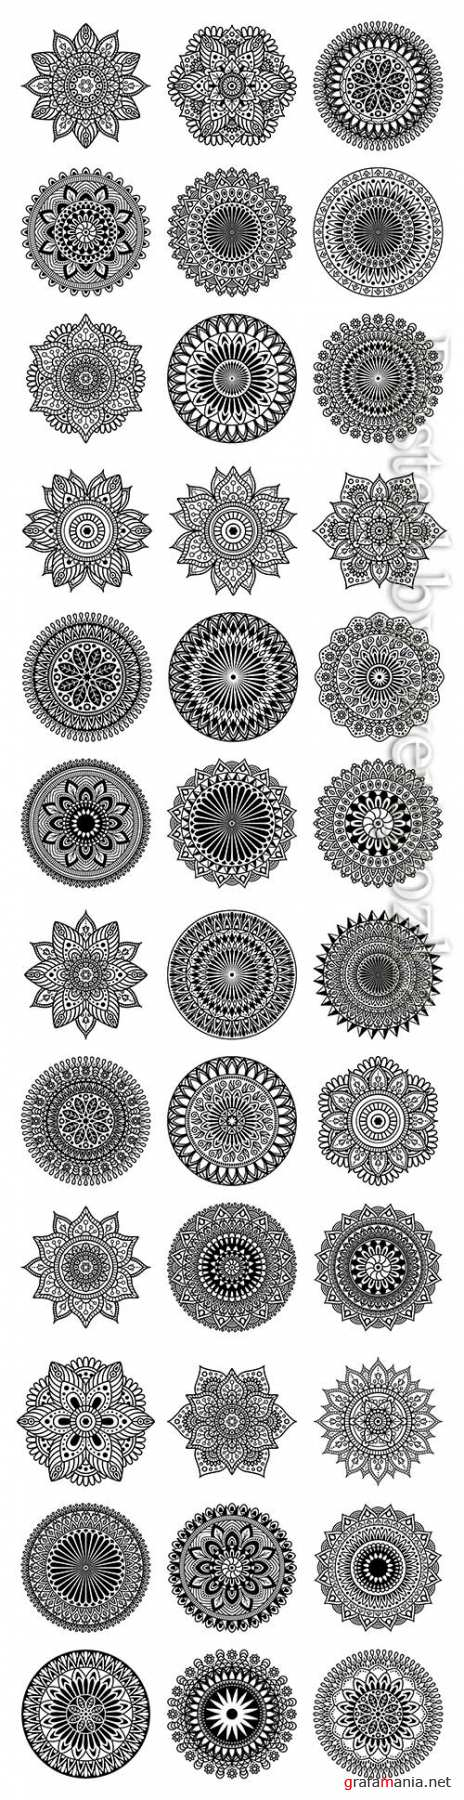 Set of mandala shape on white background, vector illustration